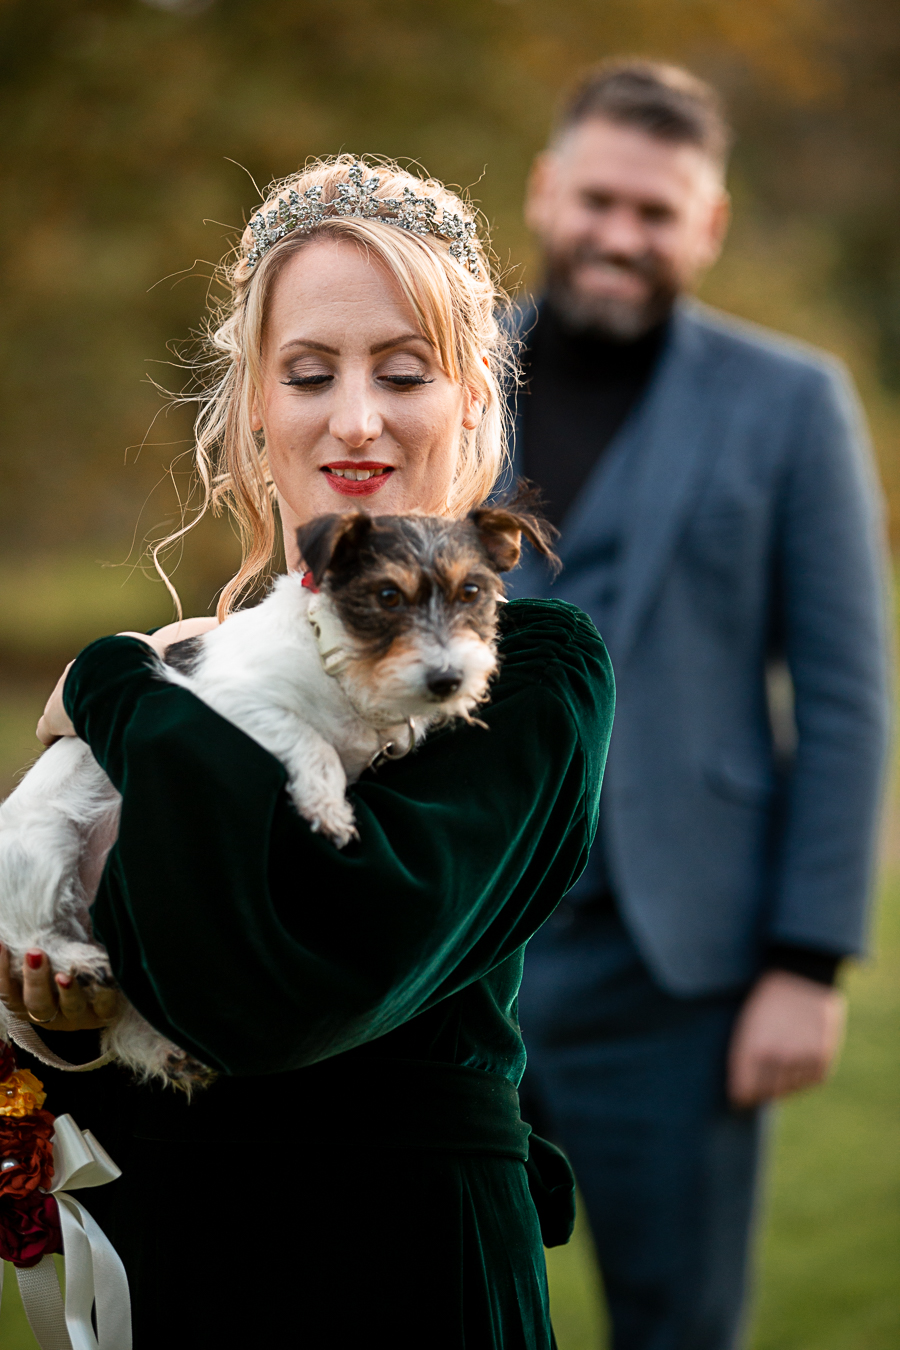 wedding magazine shoot with dogs accessories, photo by Katherine and her Camera (33)